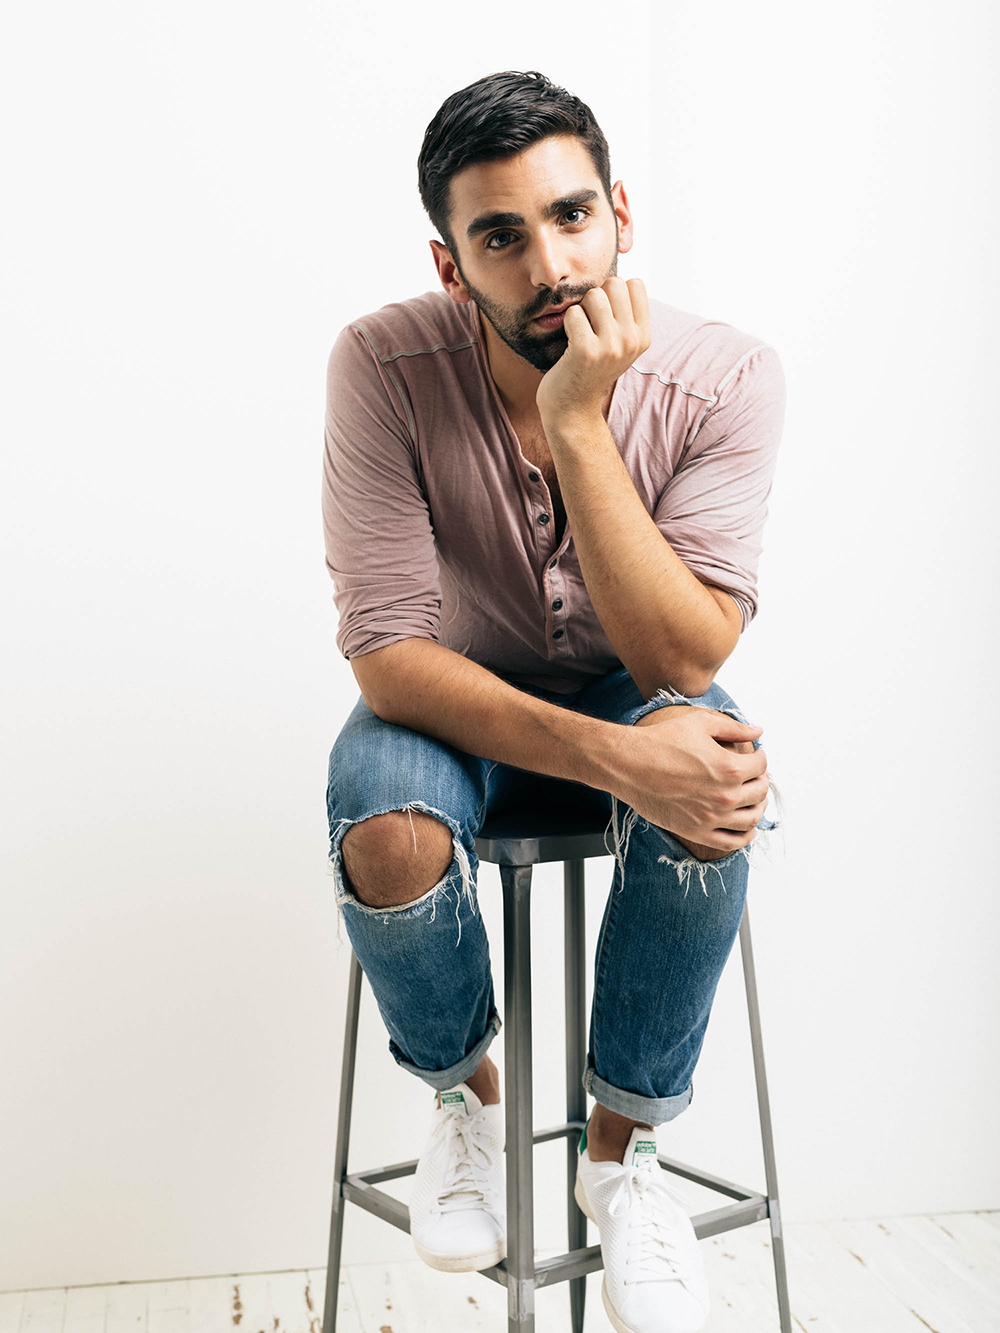 Phillip Picardi represents Fashion's Prince Charming